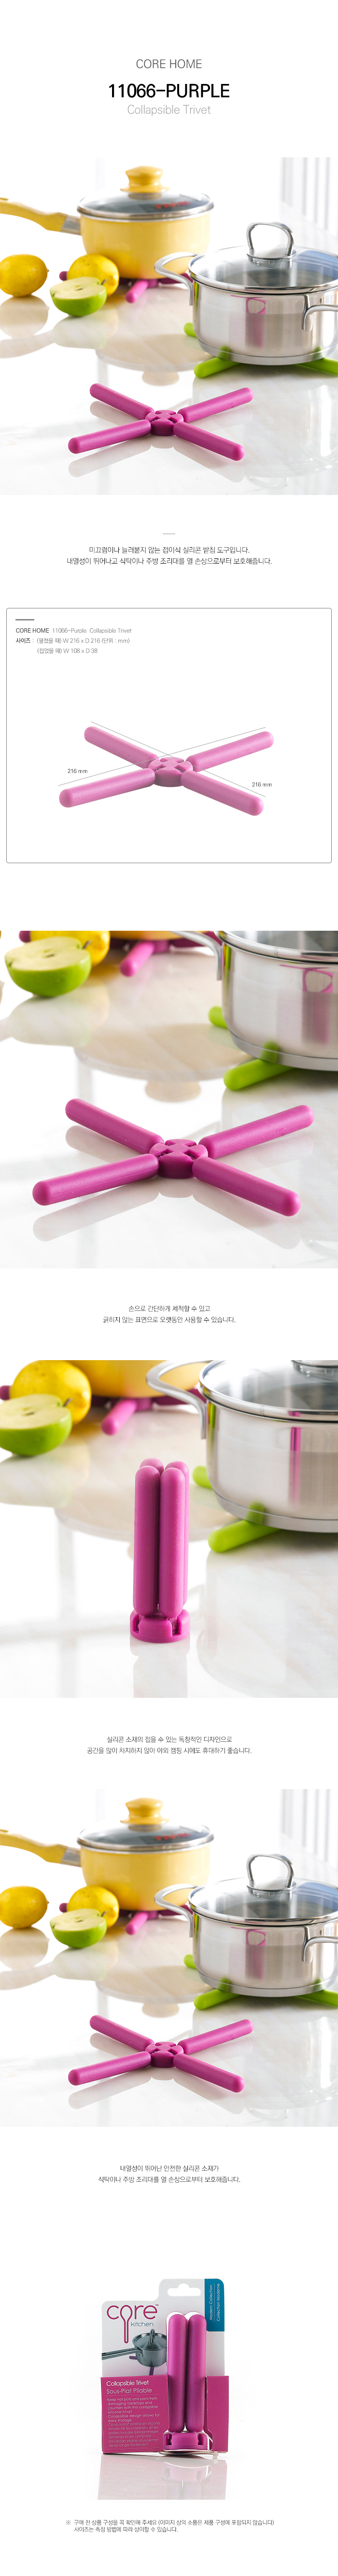 11066-Purple_Collapsible_Trivet.jpg